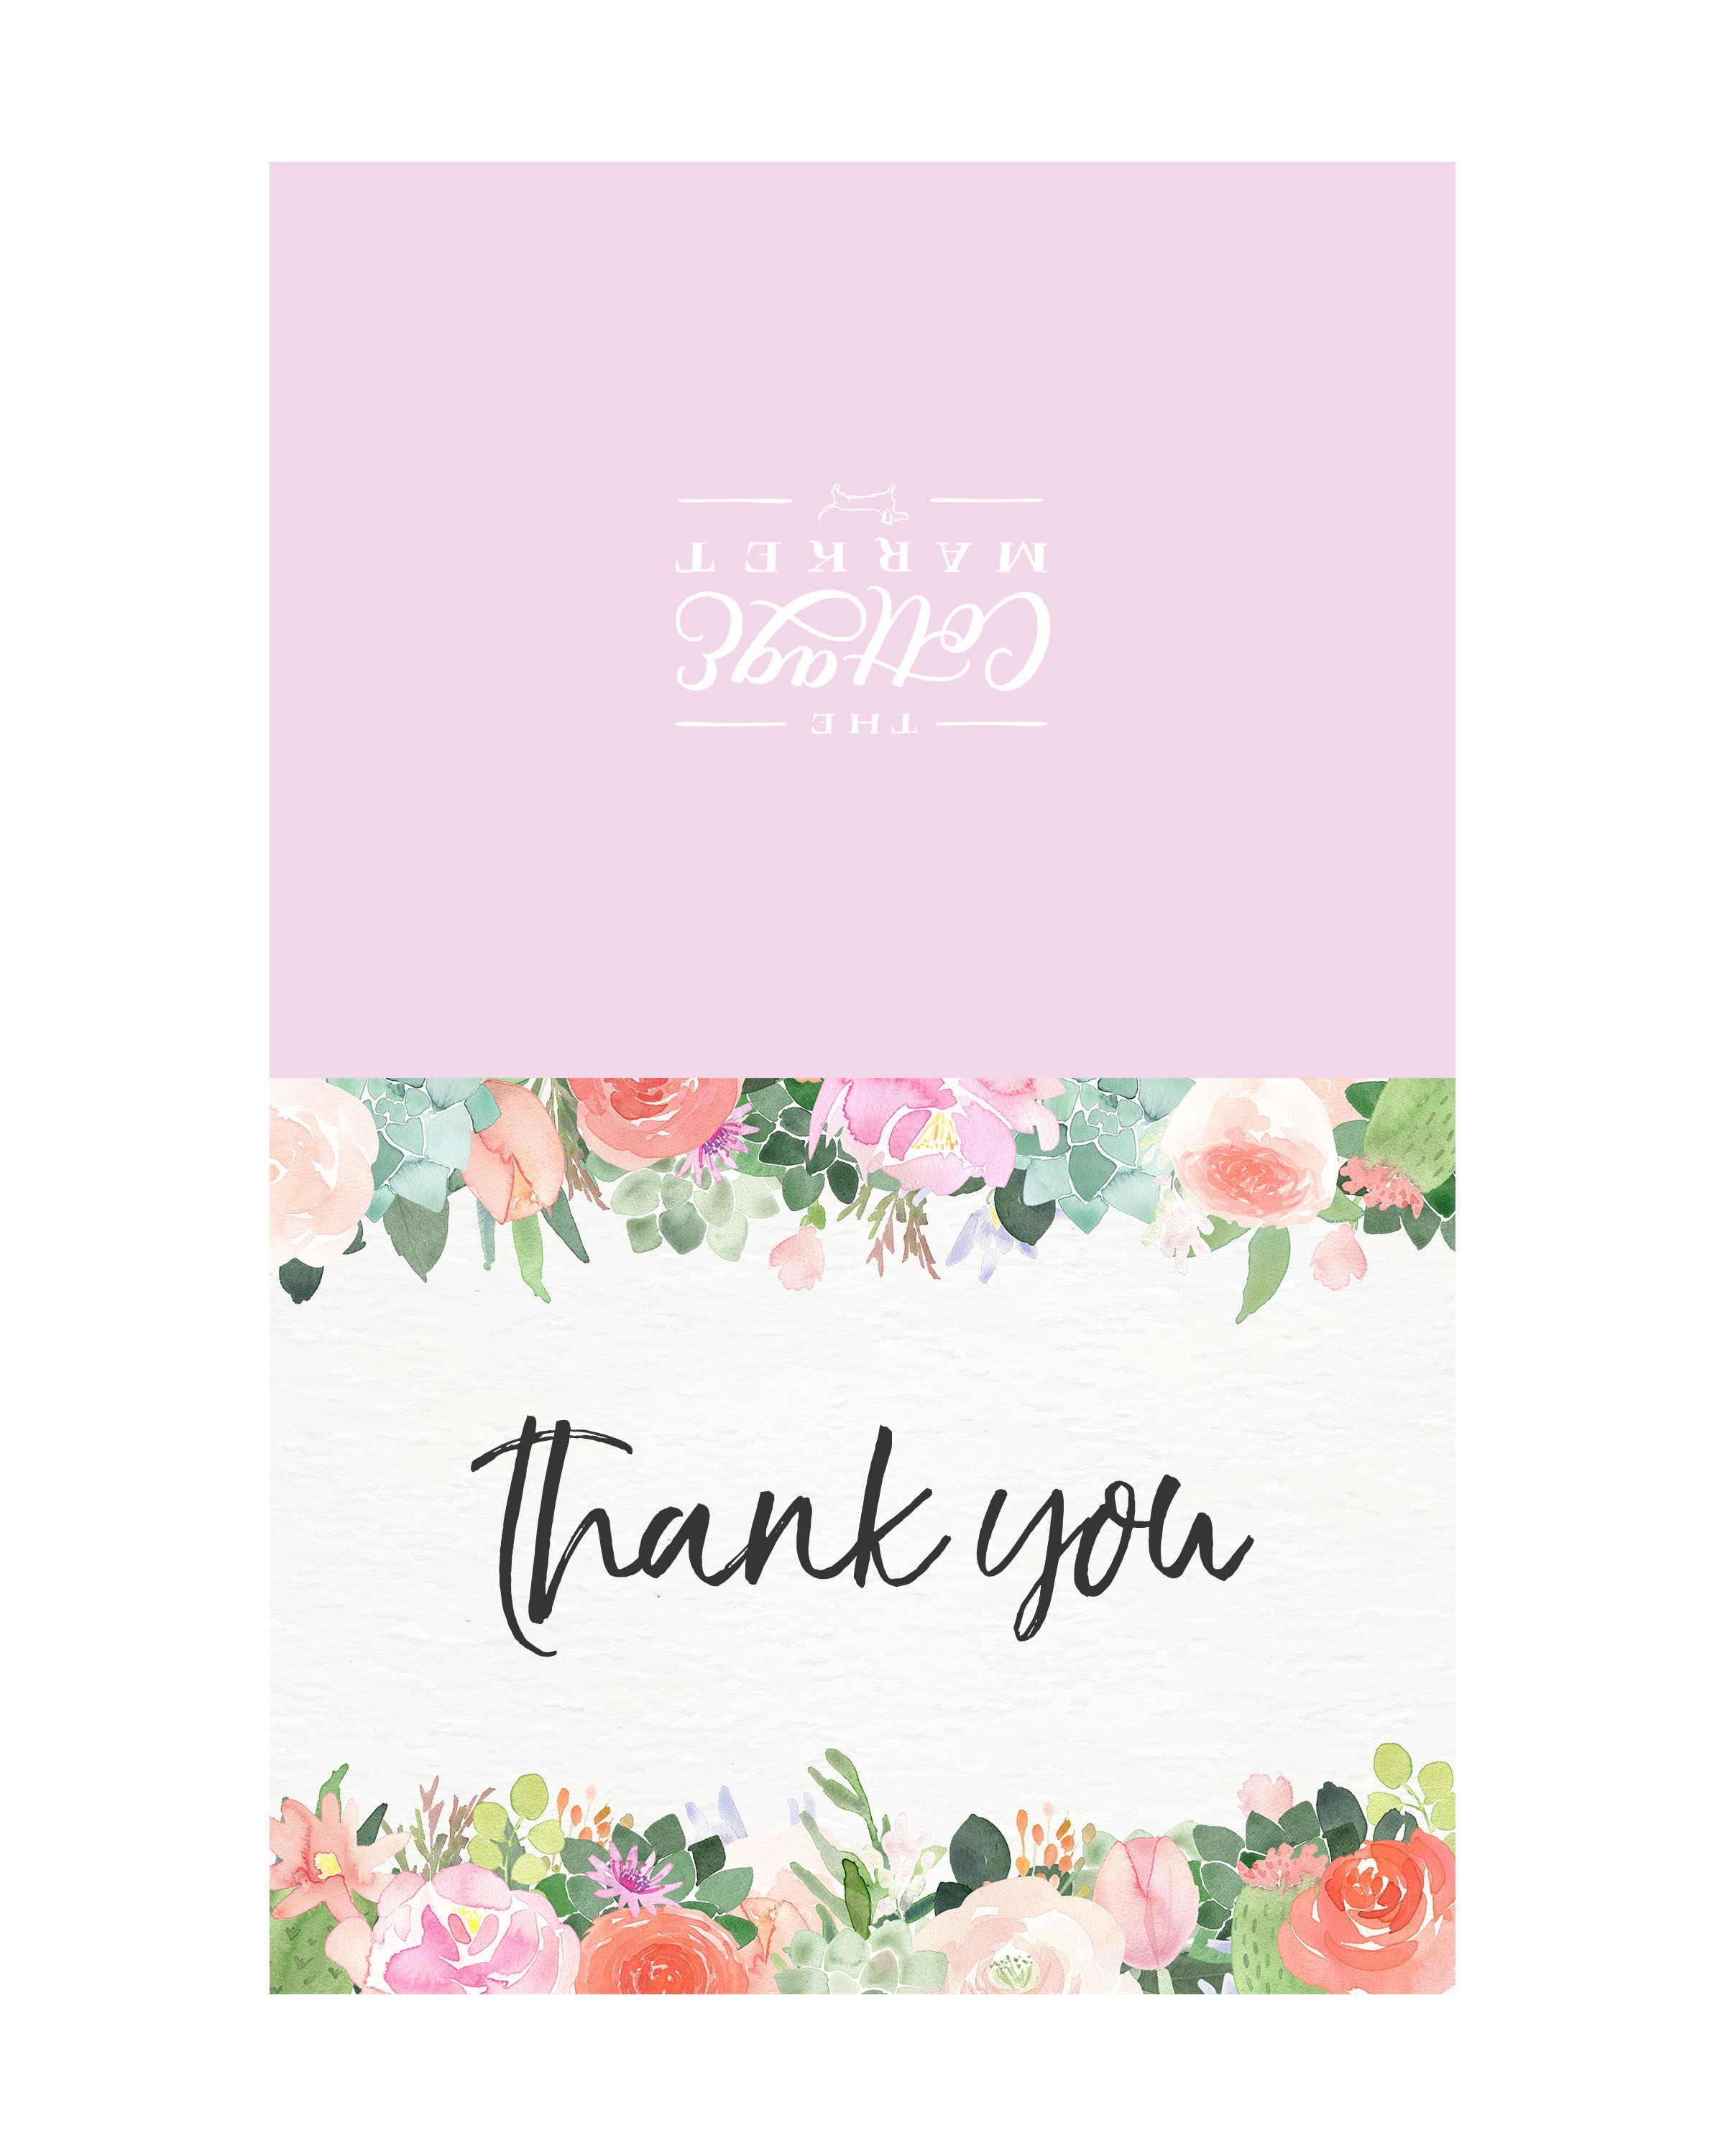 10 Free Printable Thank You Cards You Can't Miss - The Cottage Market - Free Printable Thank You Cards